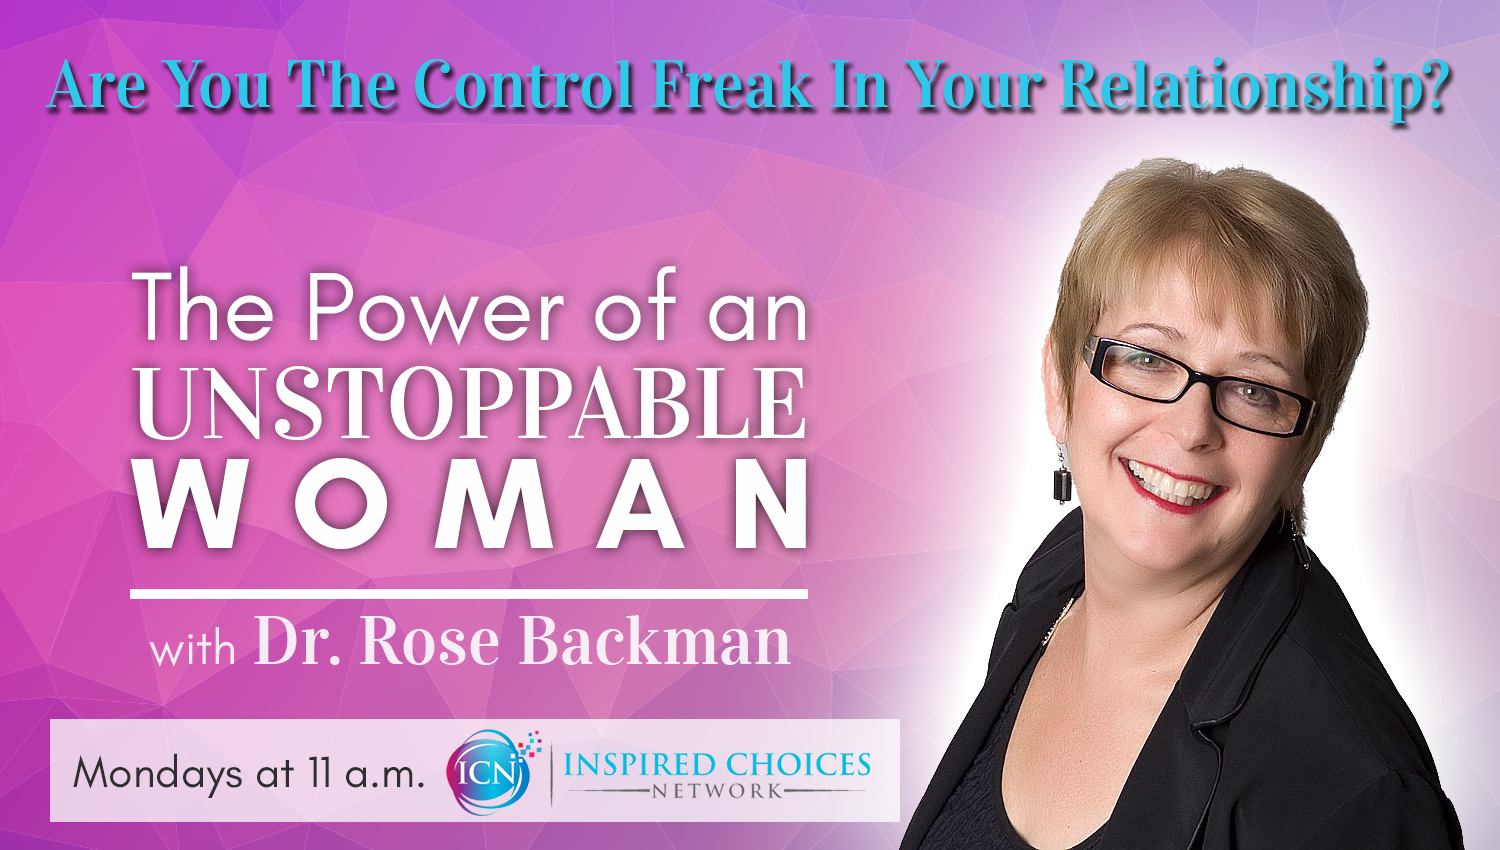 Are You The Control Freak In Your Relationship?